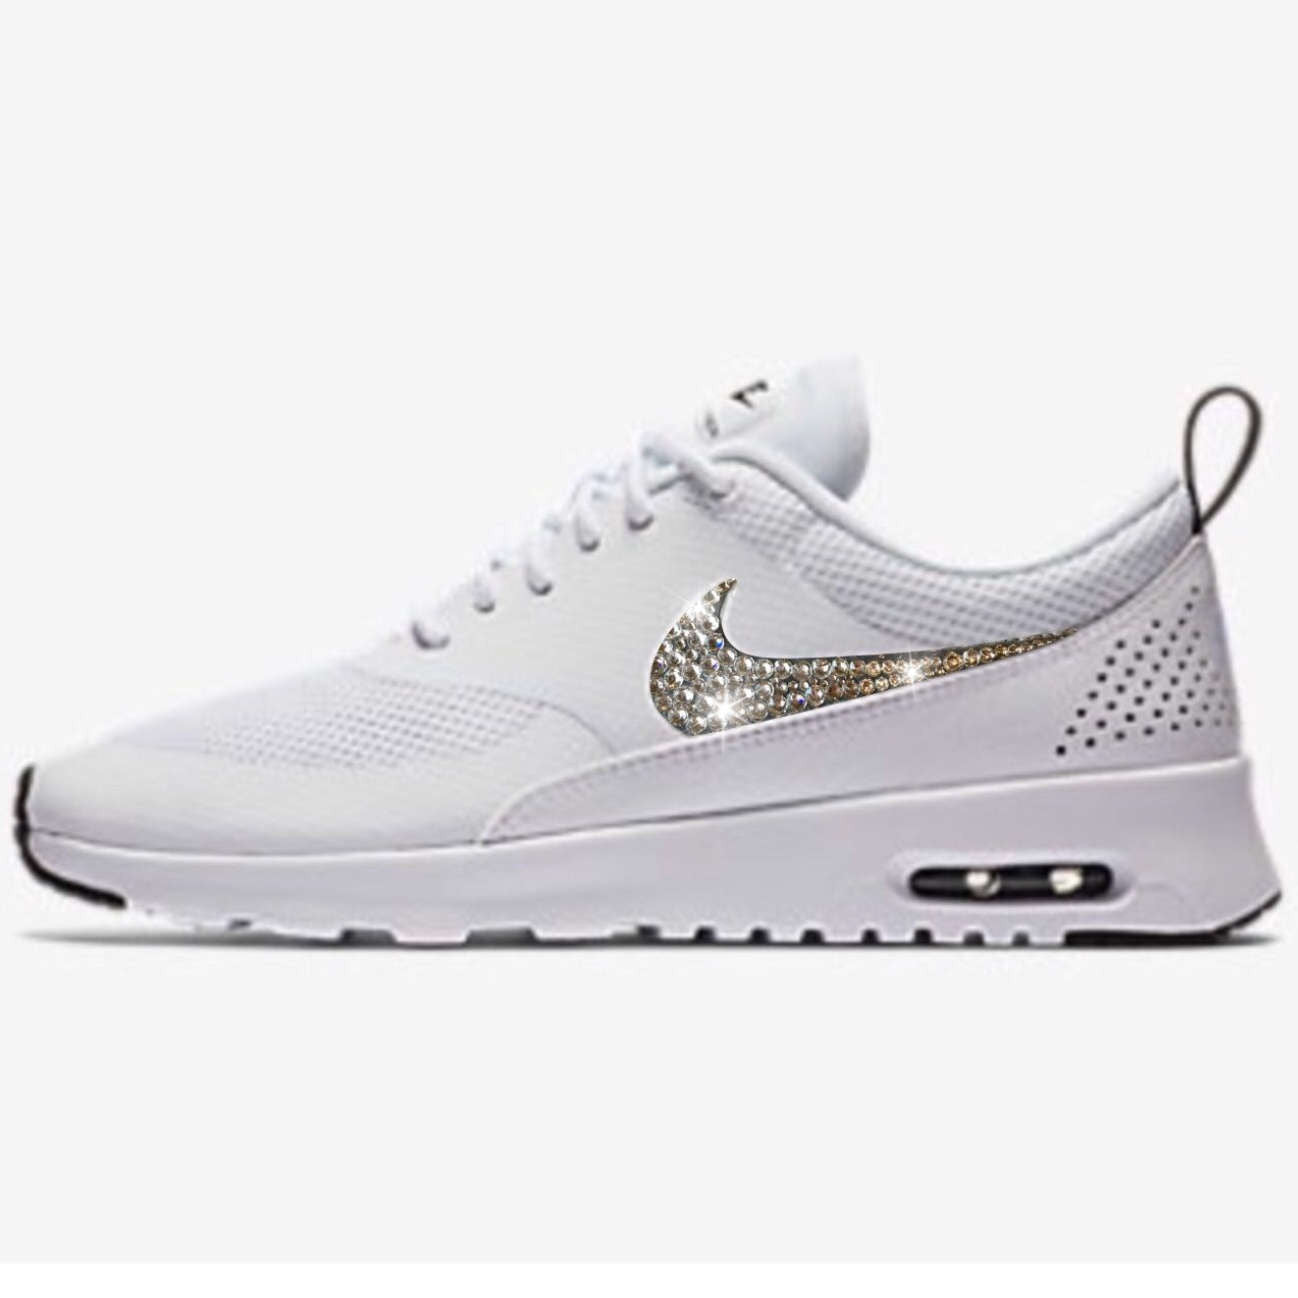 competitive price 573d3 b7f6a Bling Nike Air Max Thea Shoes with Swarovski Crystals   White   Black    Bedazzled with ...